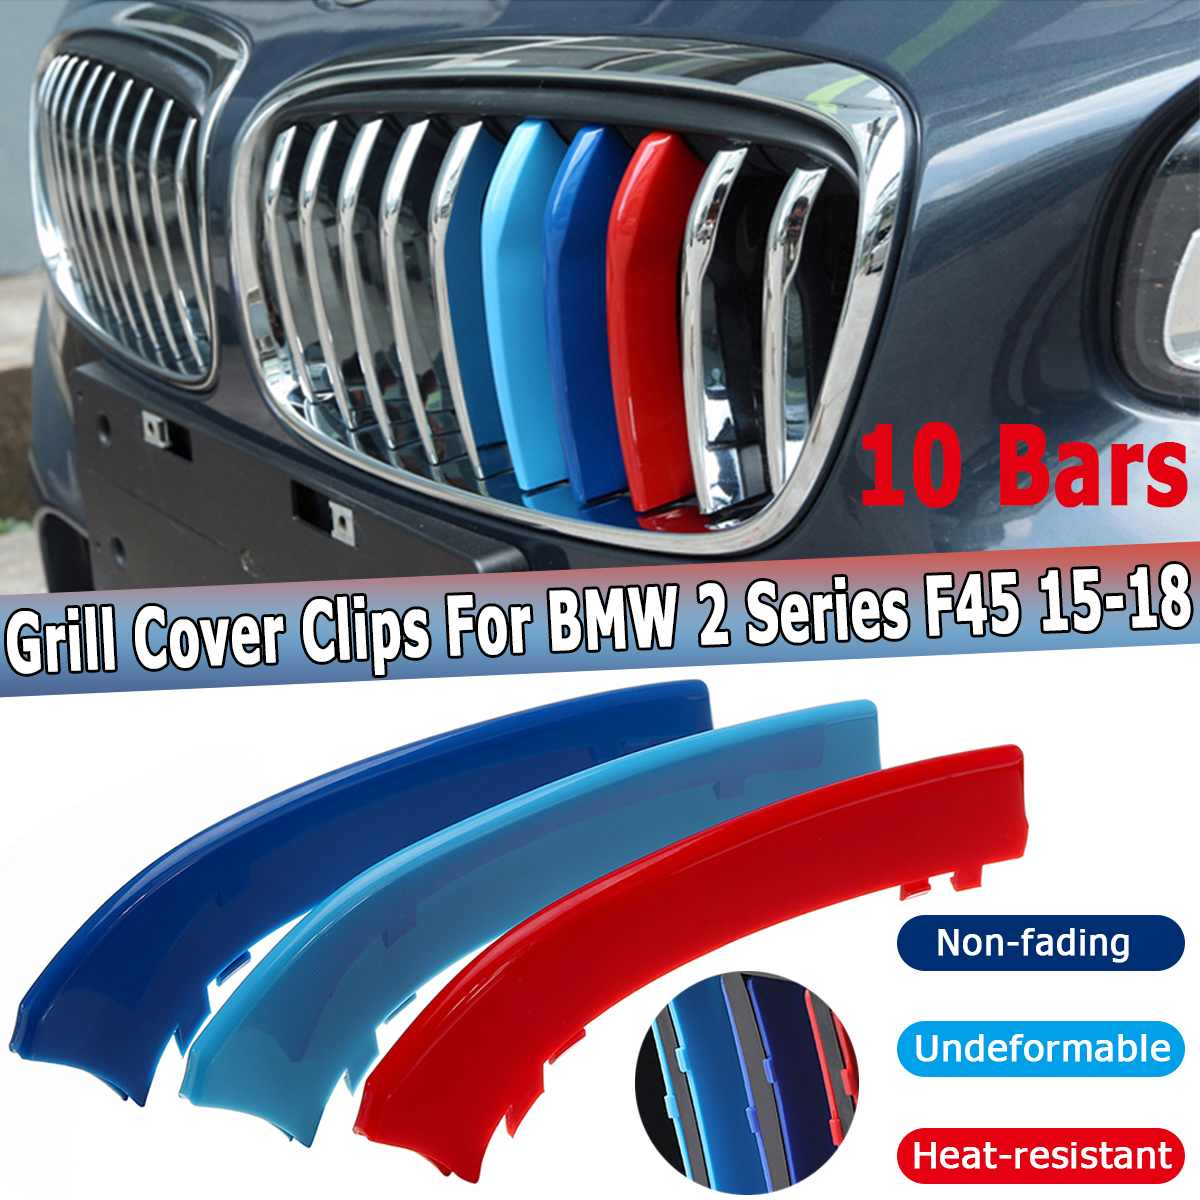 BMW F20 F21 11 Bar 2015-2016 PVC Front Grille Stripe Decal Covers